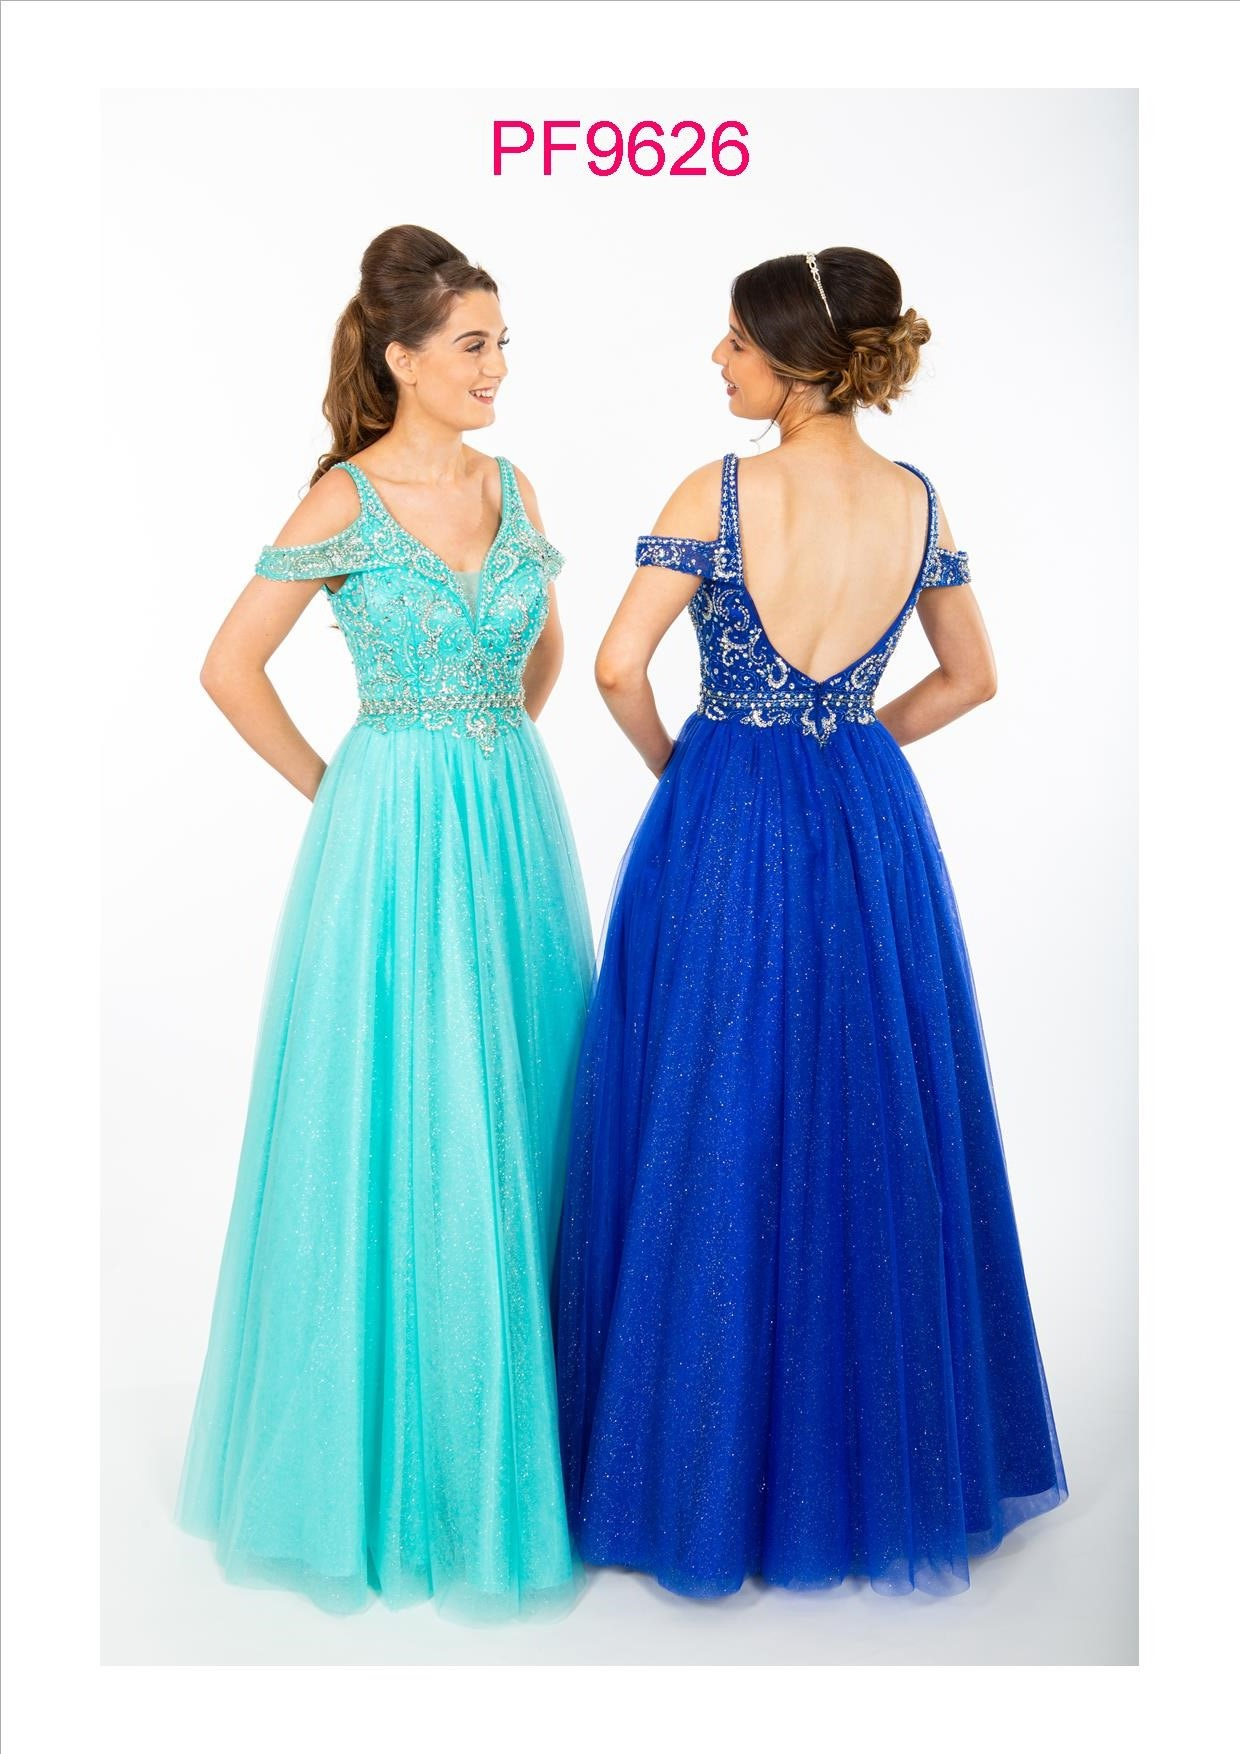 PF9626 Aqua and Royal Blue